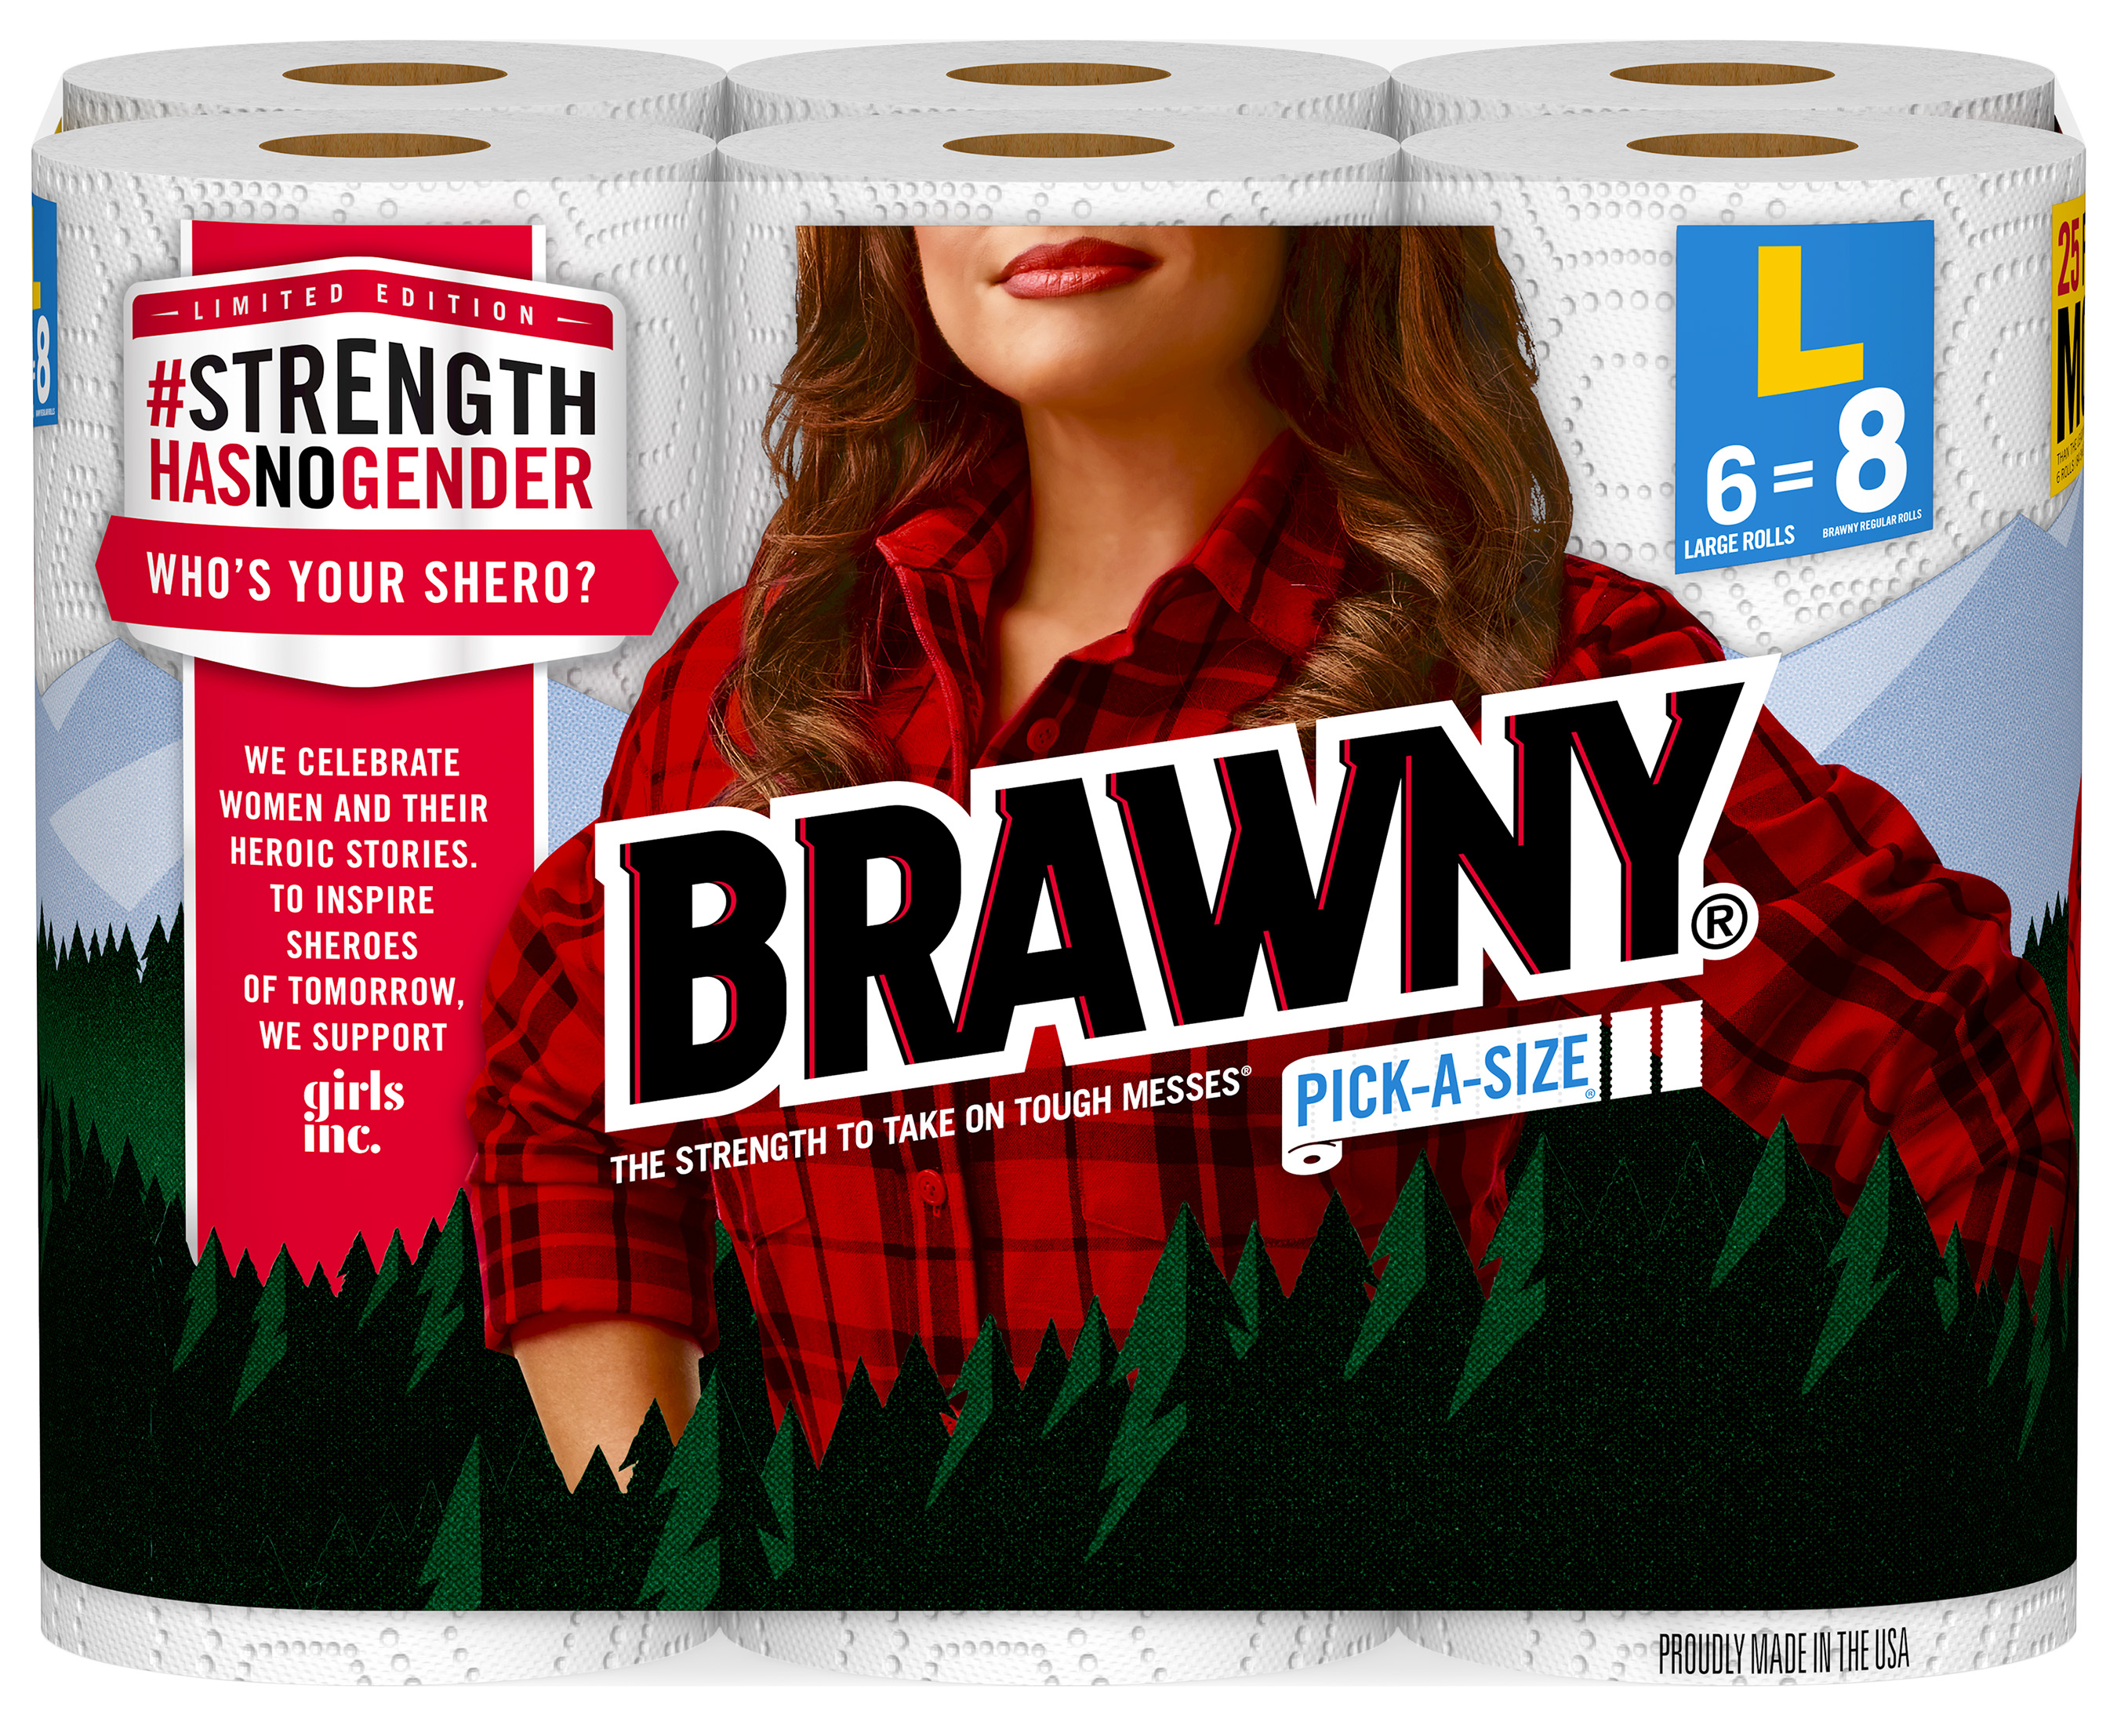 Brawny® is releasing limited-edition product featuring a replacement of the Brawny Man® with three different women on Brawny® packages at retailers nationwide during Women's History Month.